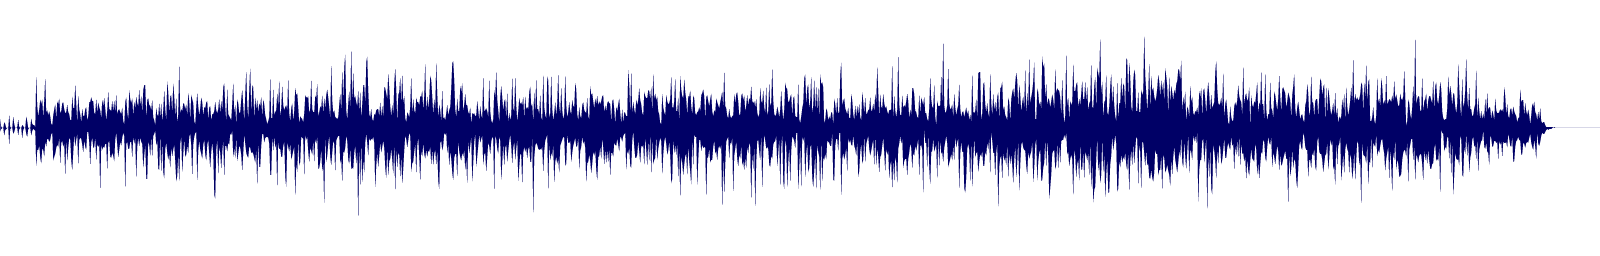 waveform of track #108325